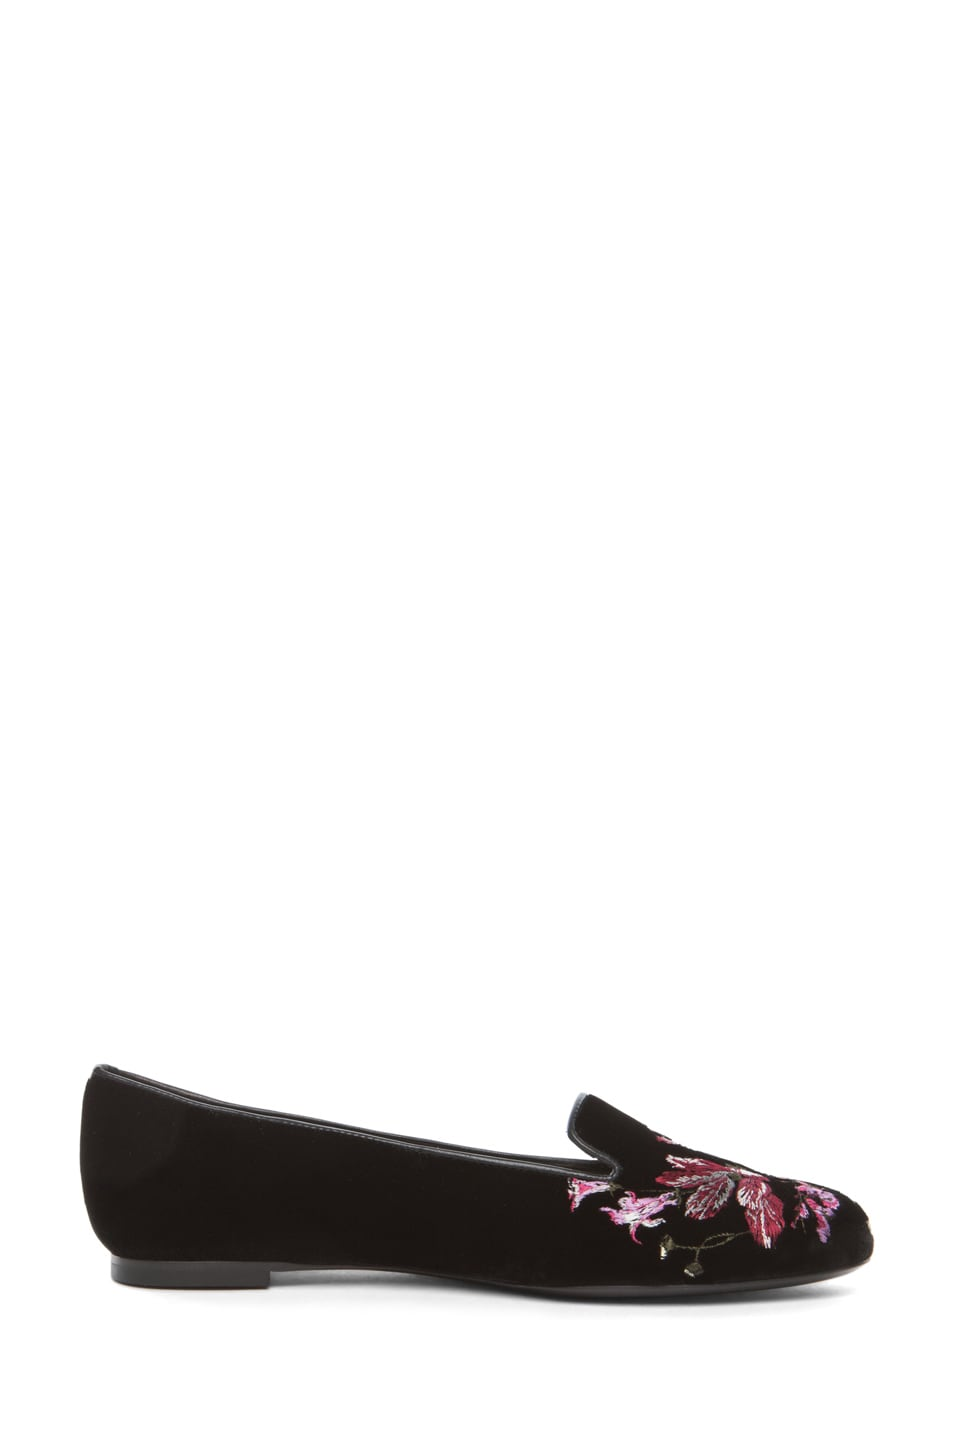 Image 5 of Alexander McQueen Velvet Hamlet Flower Slipper in Black